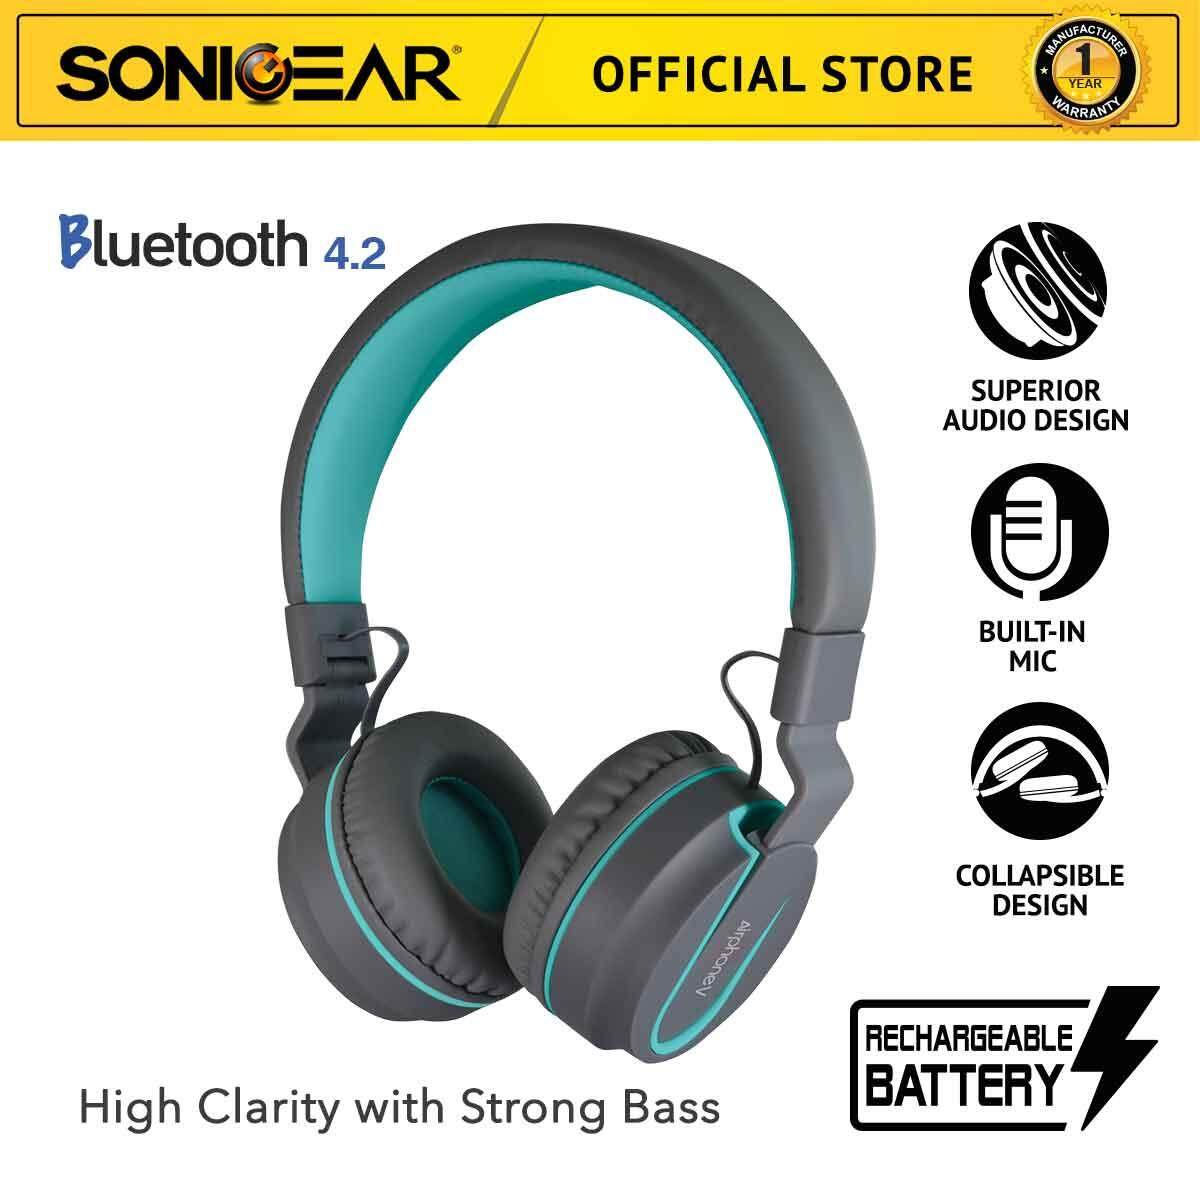 SonicGear AirPhone V High Performance Bluetooth Headphones For Smartphones and Tablets